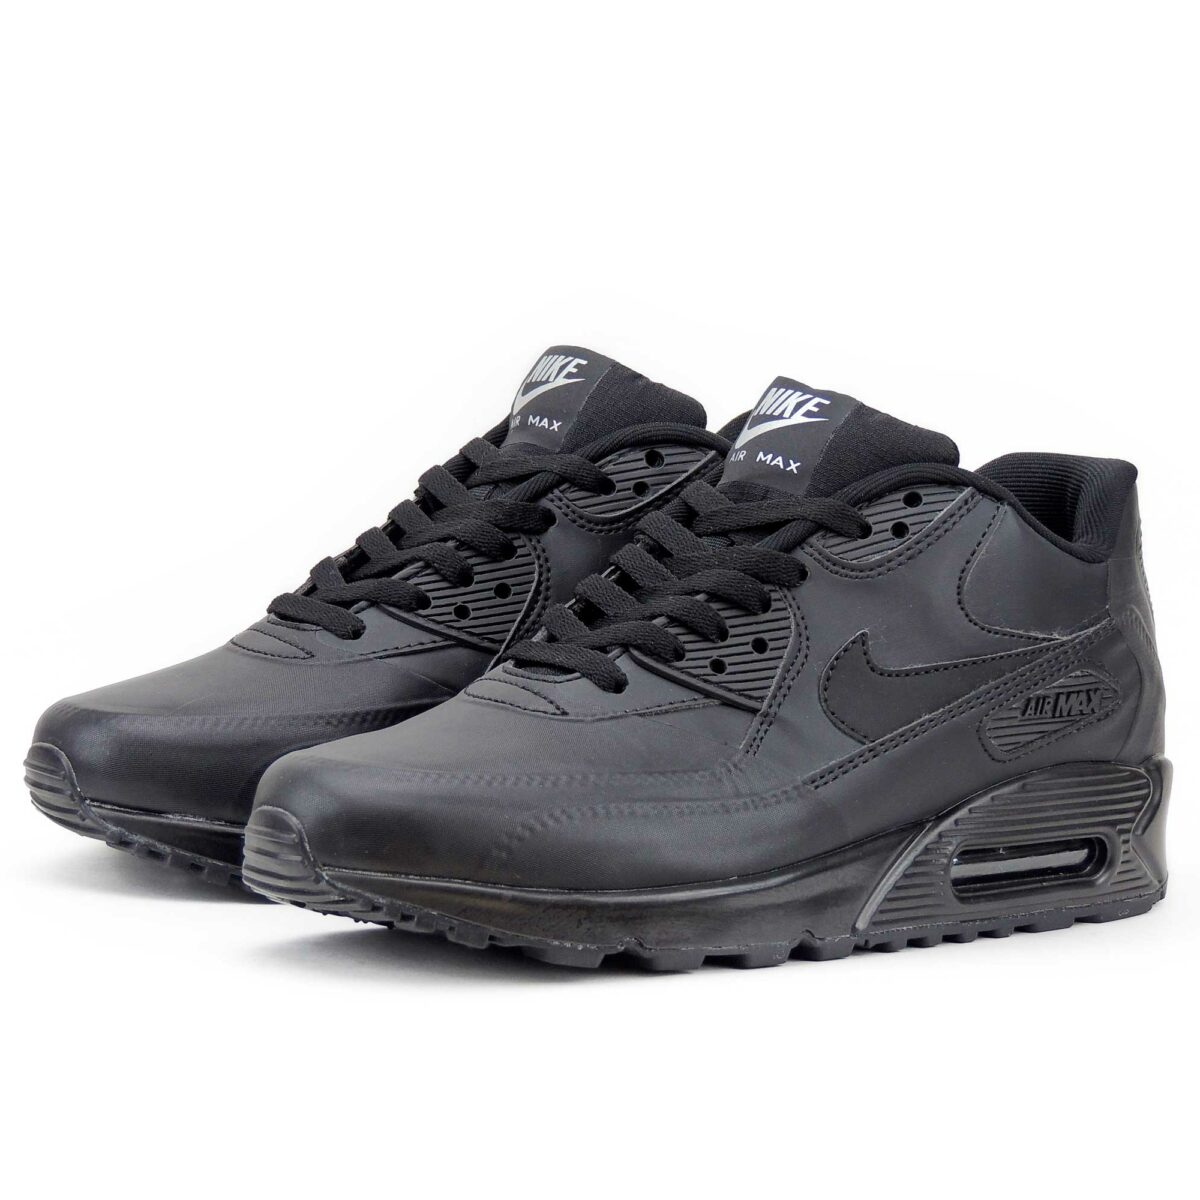 nike air max 90 premium se all black 858954_007 купить